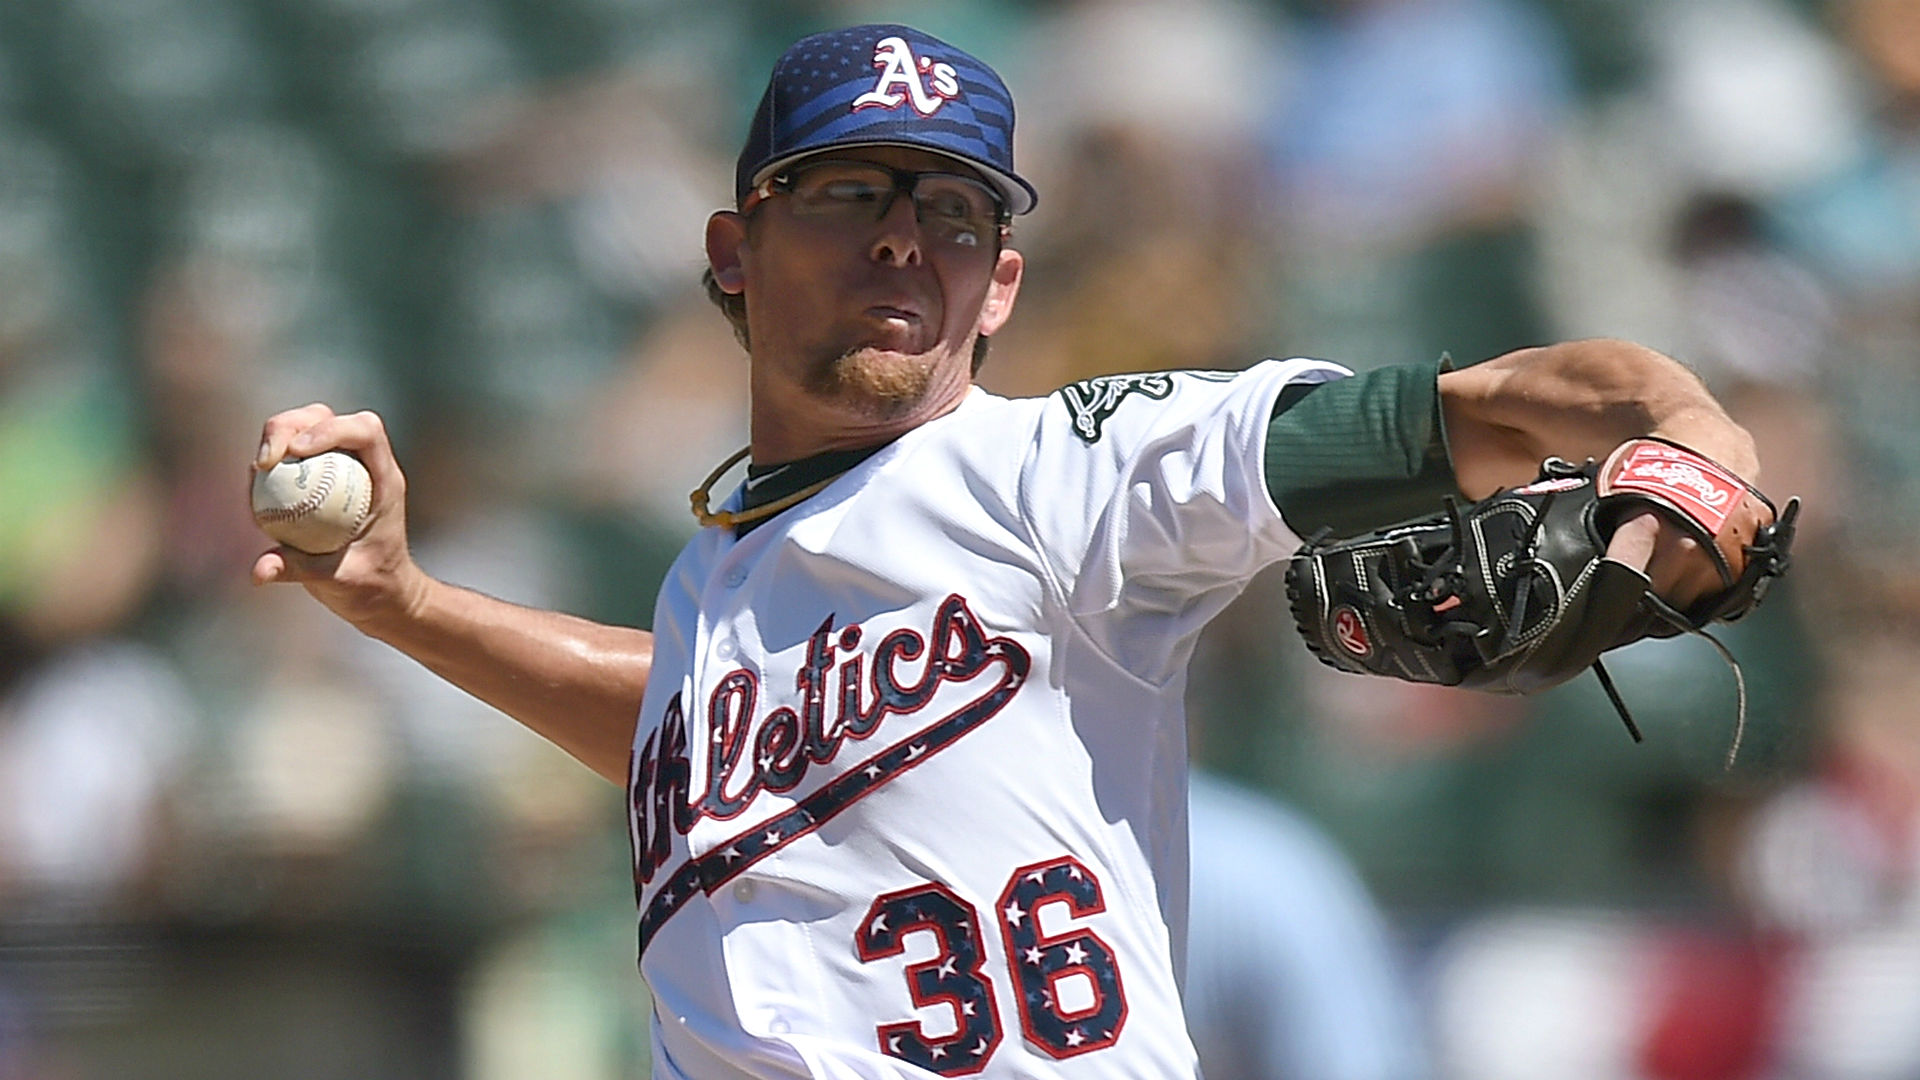 MLB trade rumors: Mets acquire Tyler Clippard from Athletics, add to bullpen